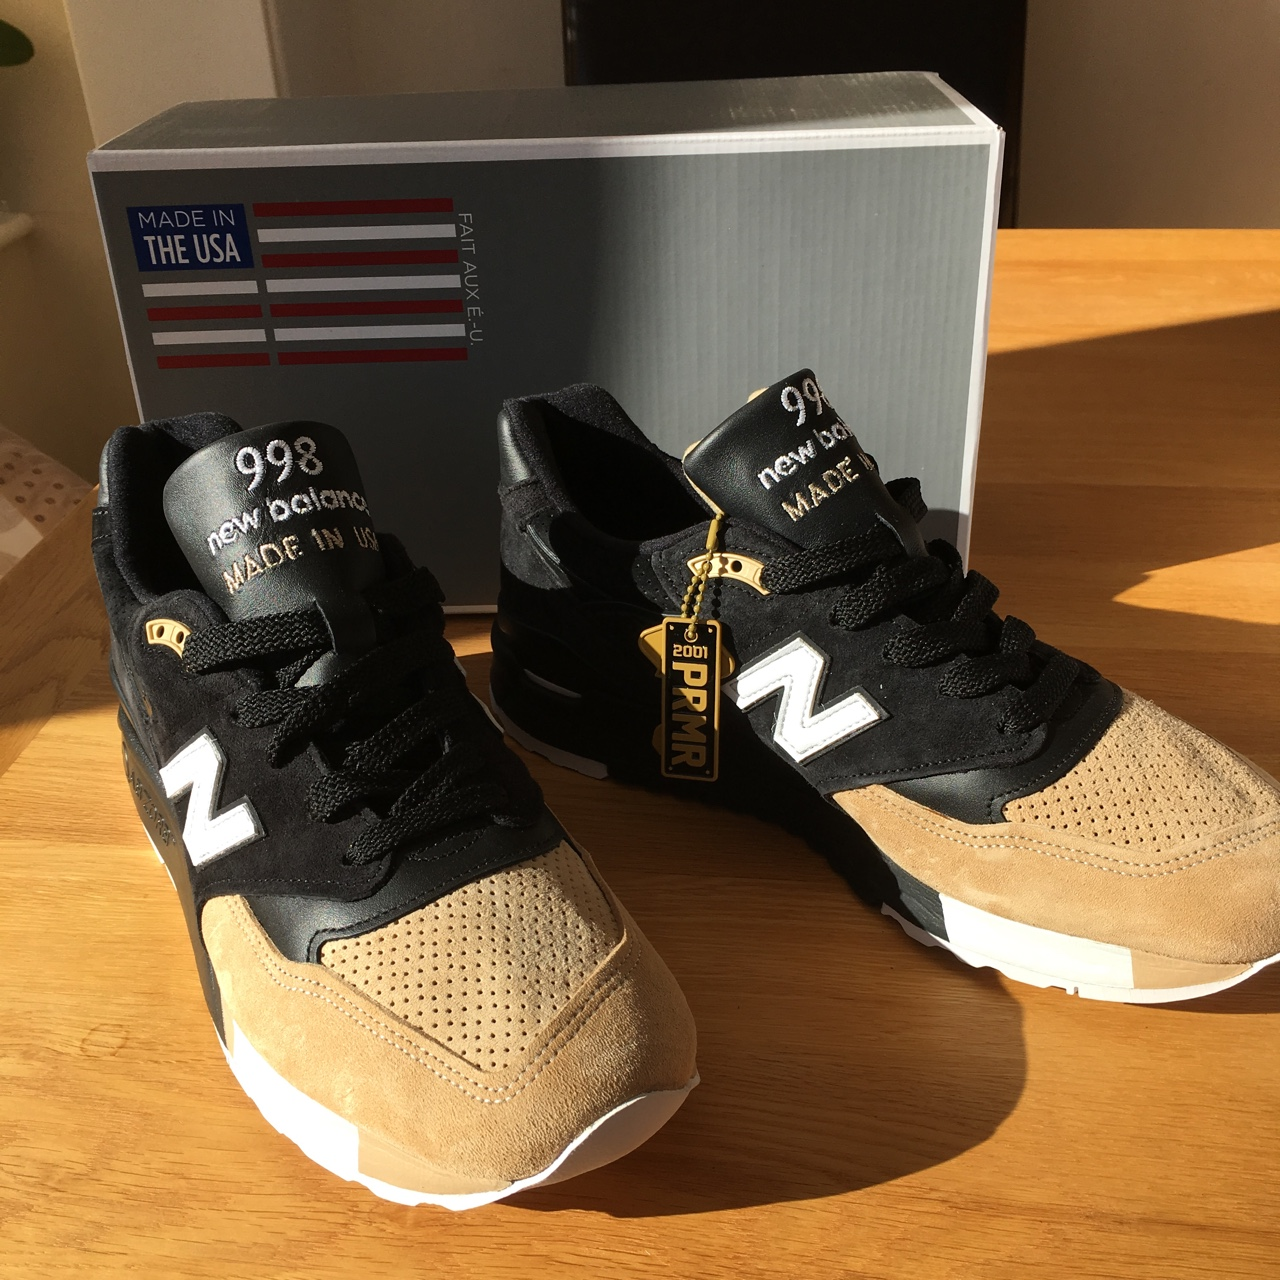 timeless design 9c92b dee85 New Balance x Premier 998 DS UK9 Open to offers.... - Depop